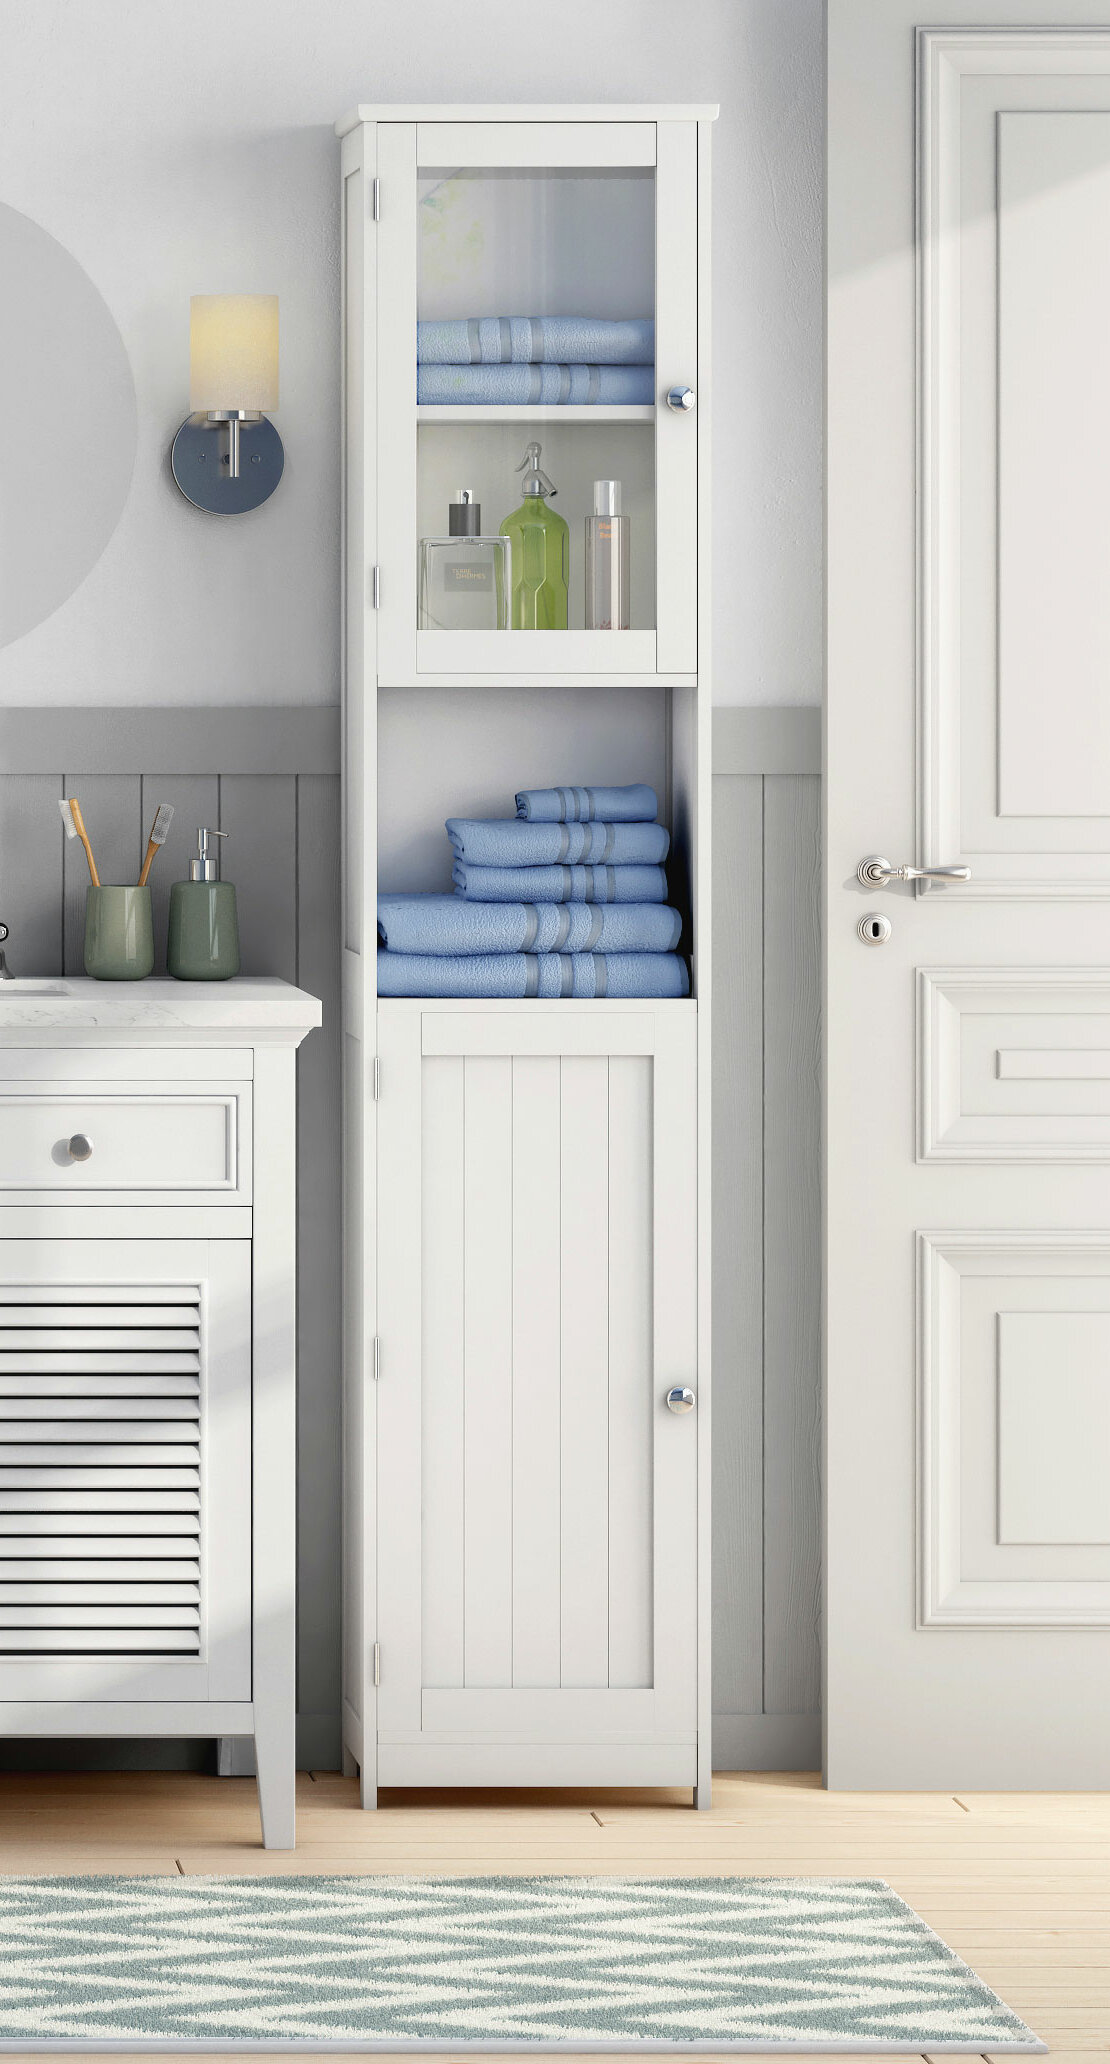 All Home 40 x 189cm Free Standing Tall Bathroom Cabinet & Reviews | Wayfair.co.uk